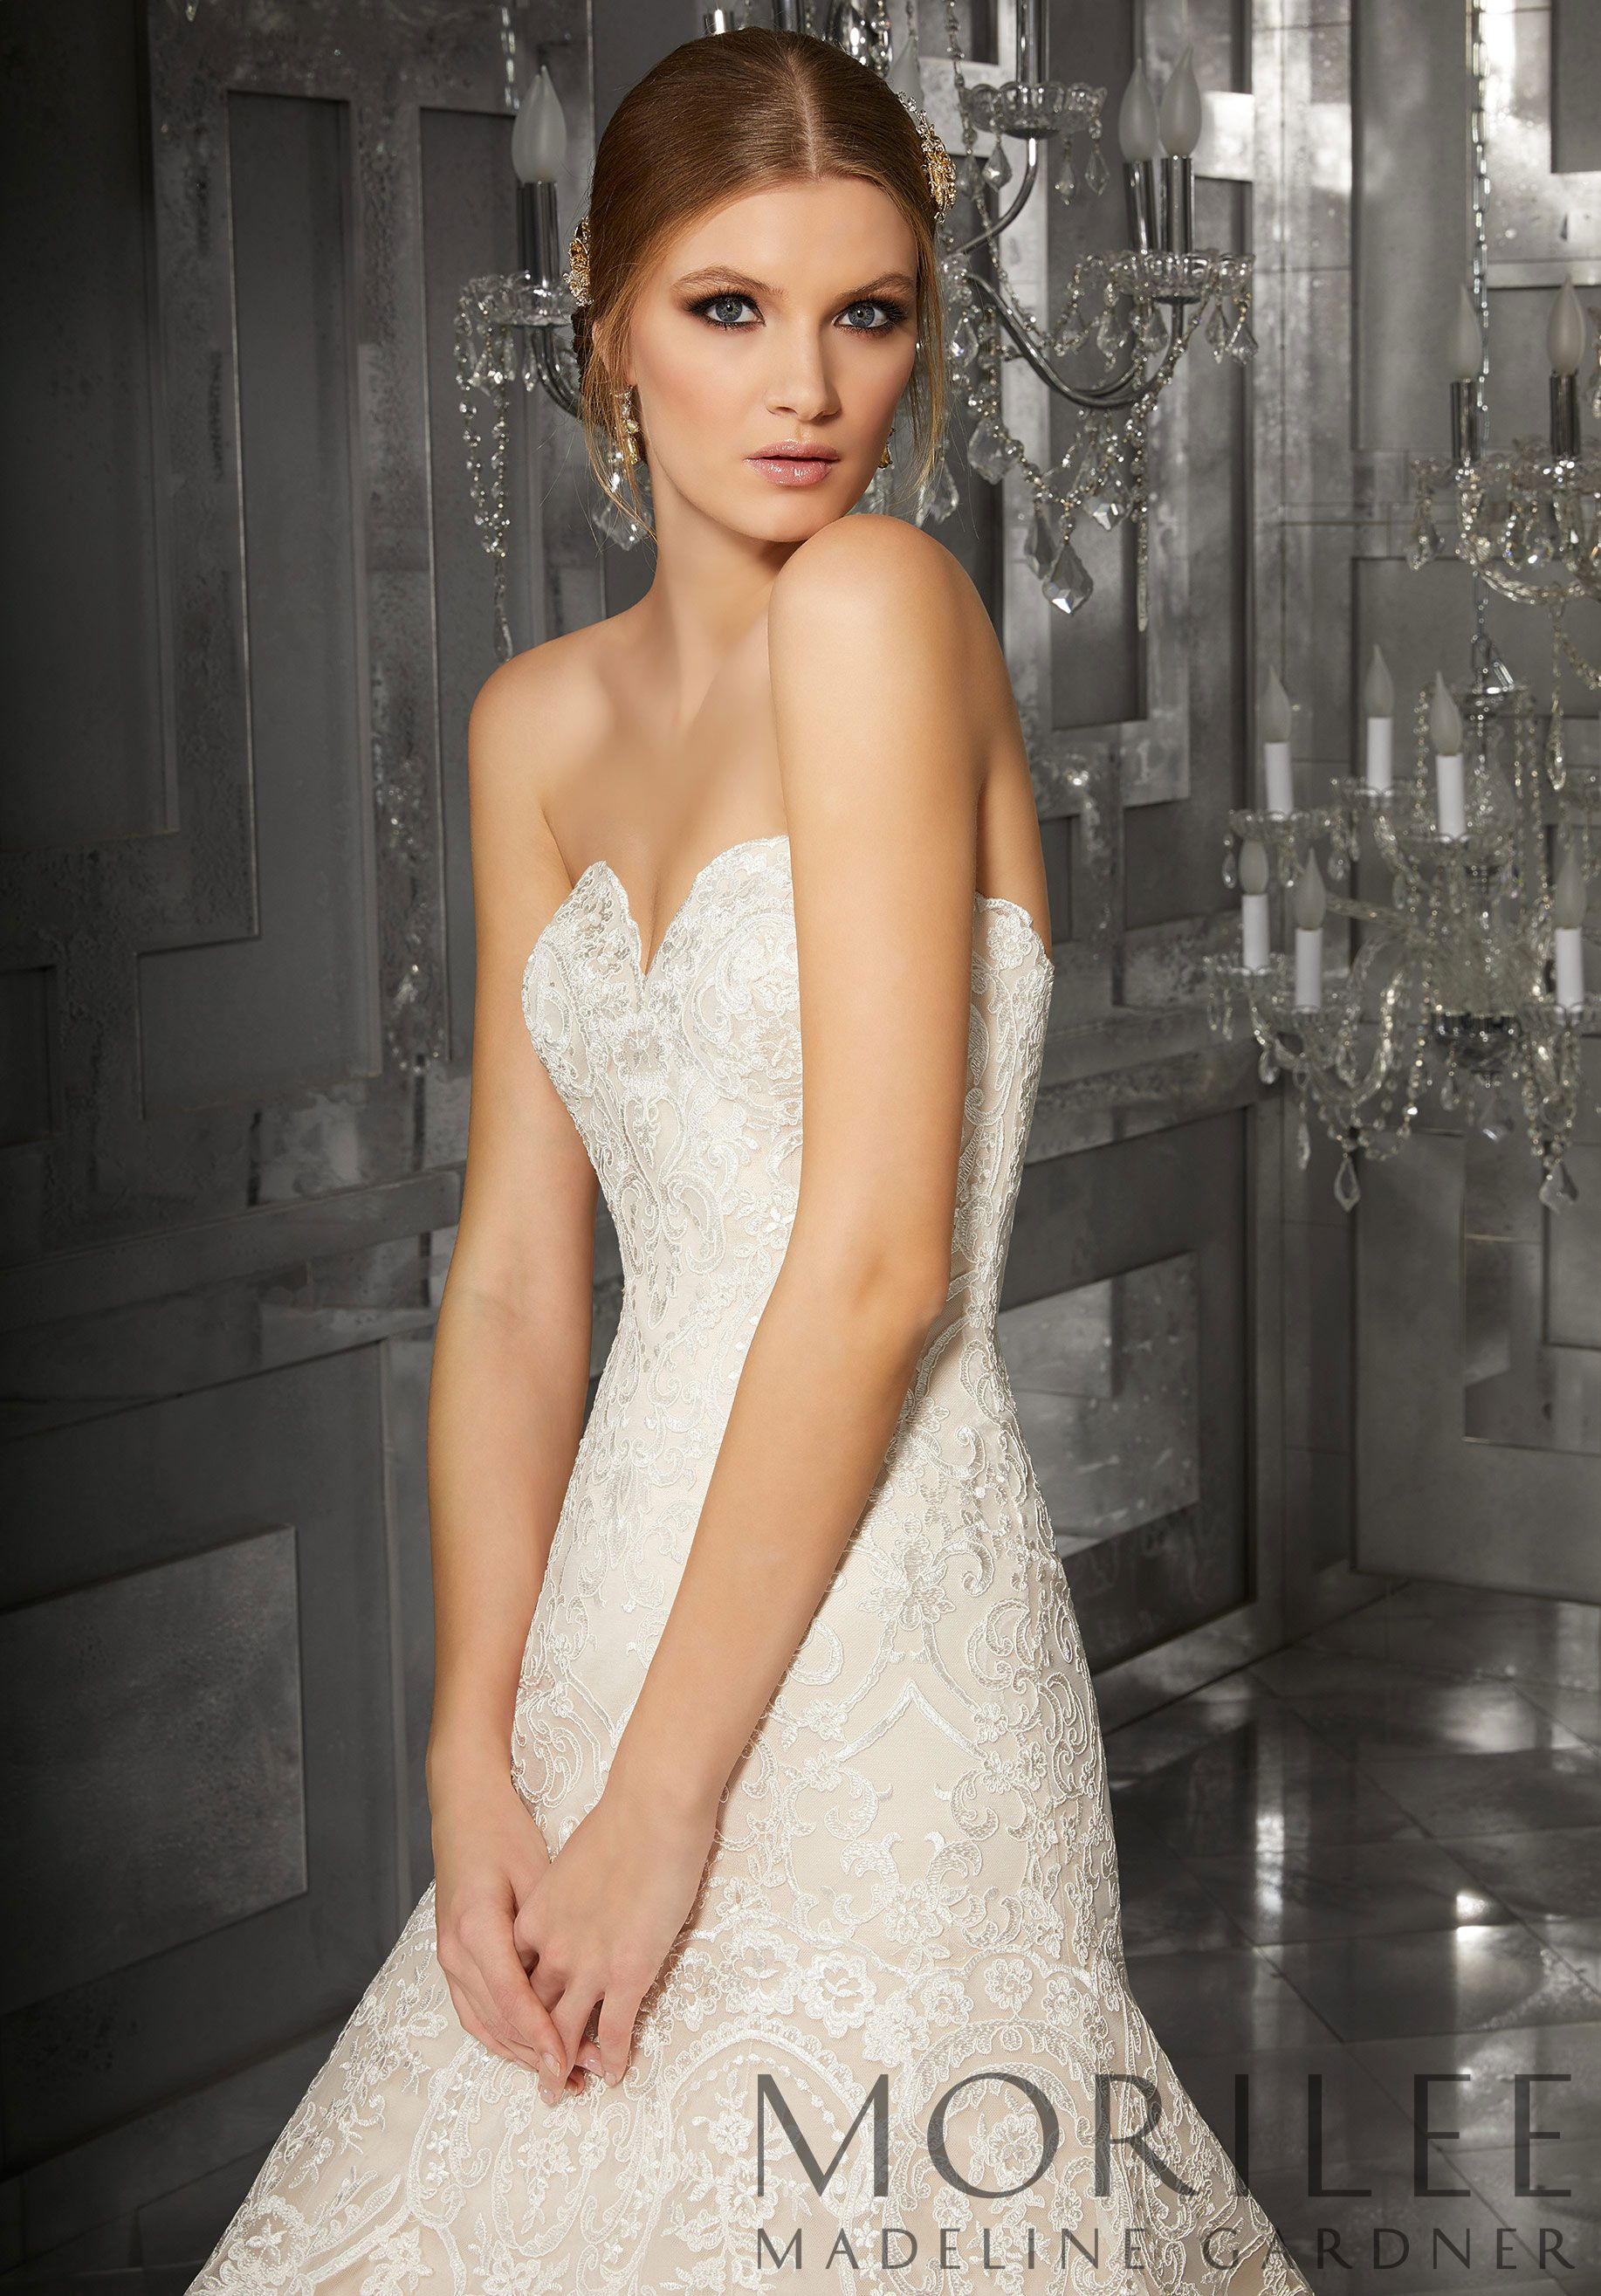 Mori lee madeline gardner wedding dress  Morilee  Madeline Gardner Monroe Wedding Dress Romantic and